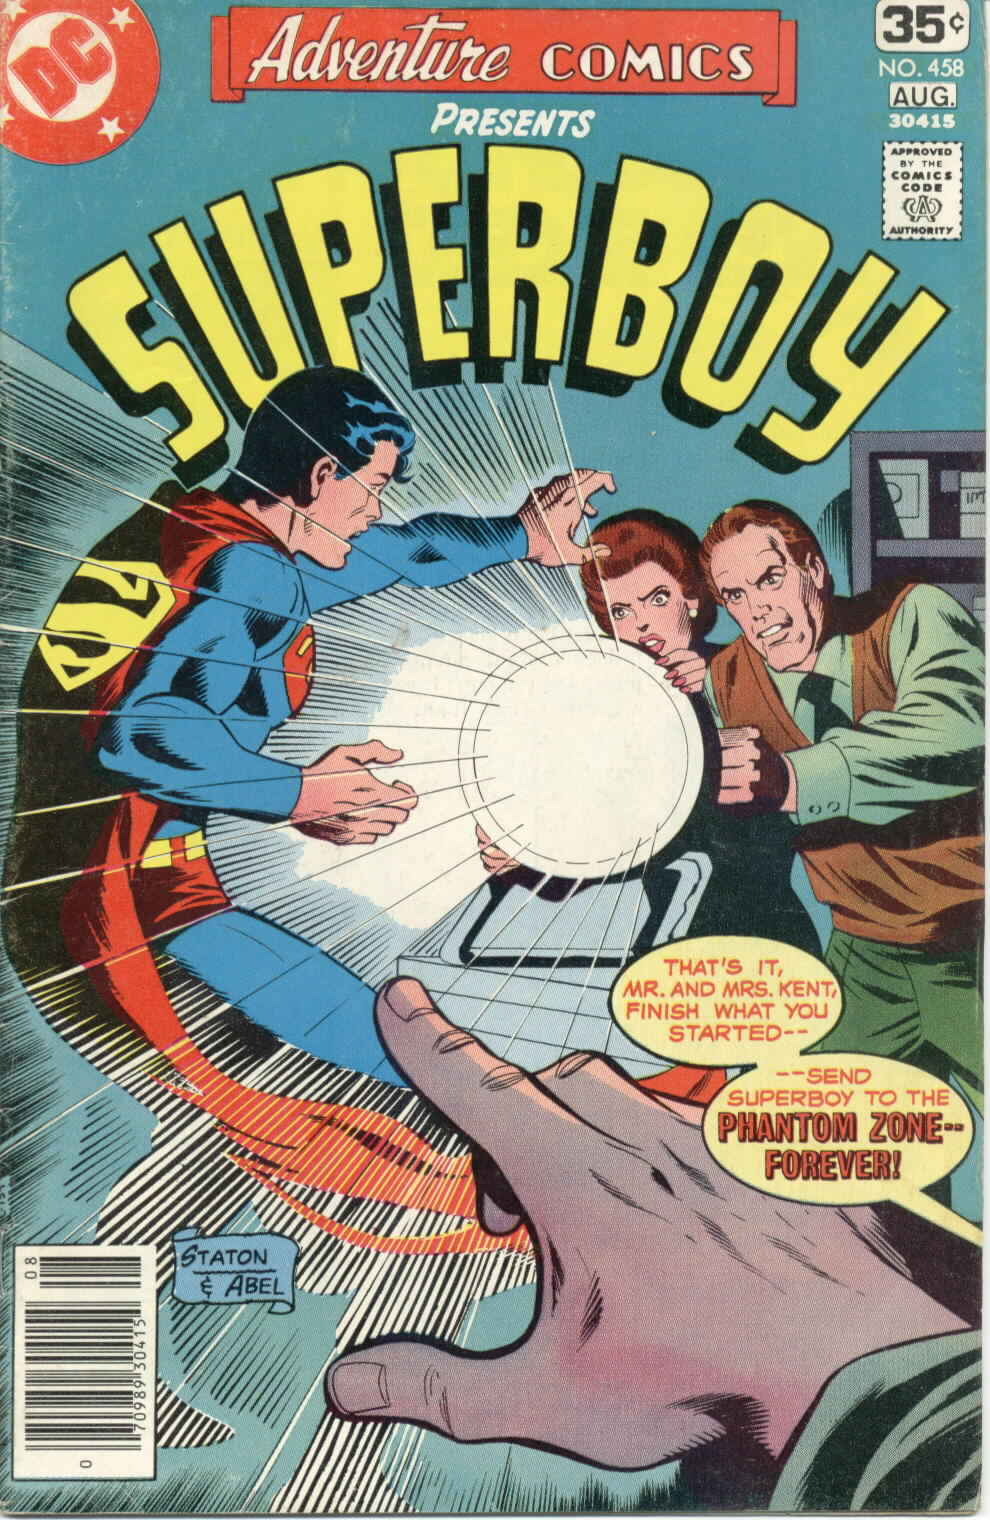 Adventure Comics (1938) #458, cover penciled by Joe Staton & inked by Jack Abel.